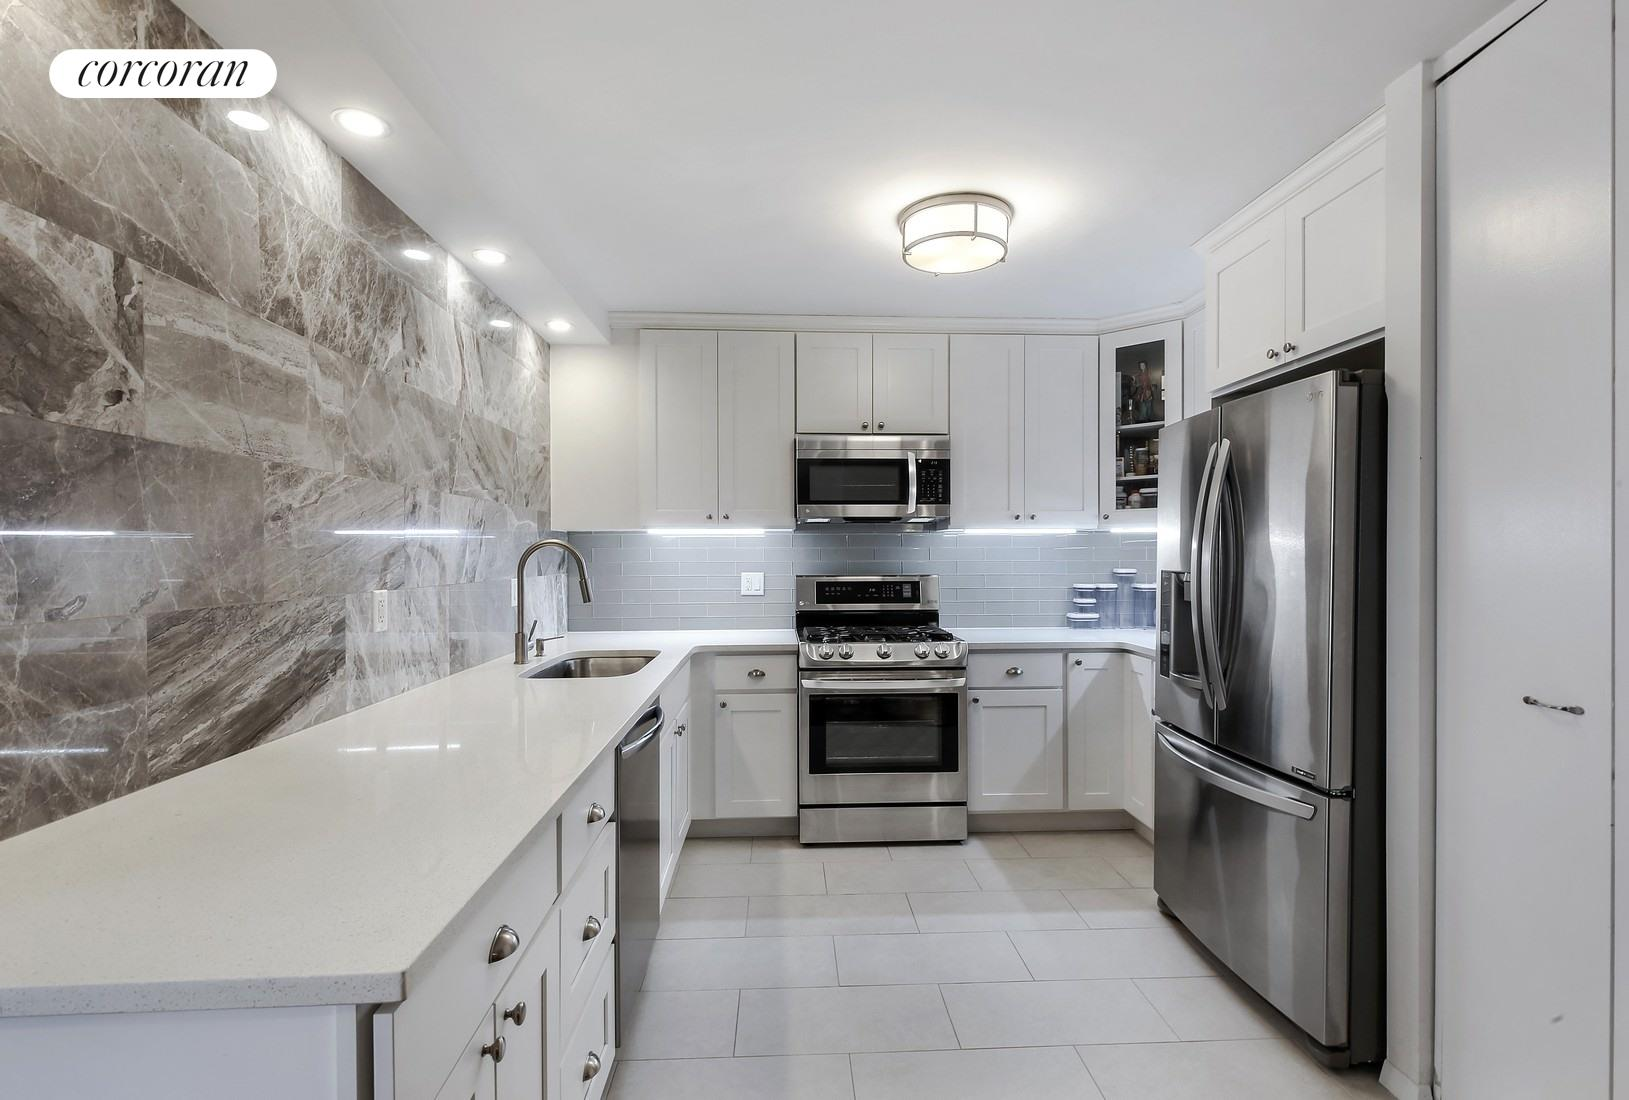 Corcoran 2 South End Ave Apt 9g Battery Park City Real